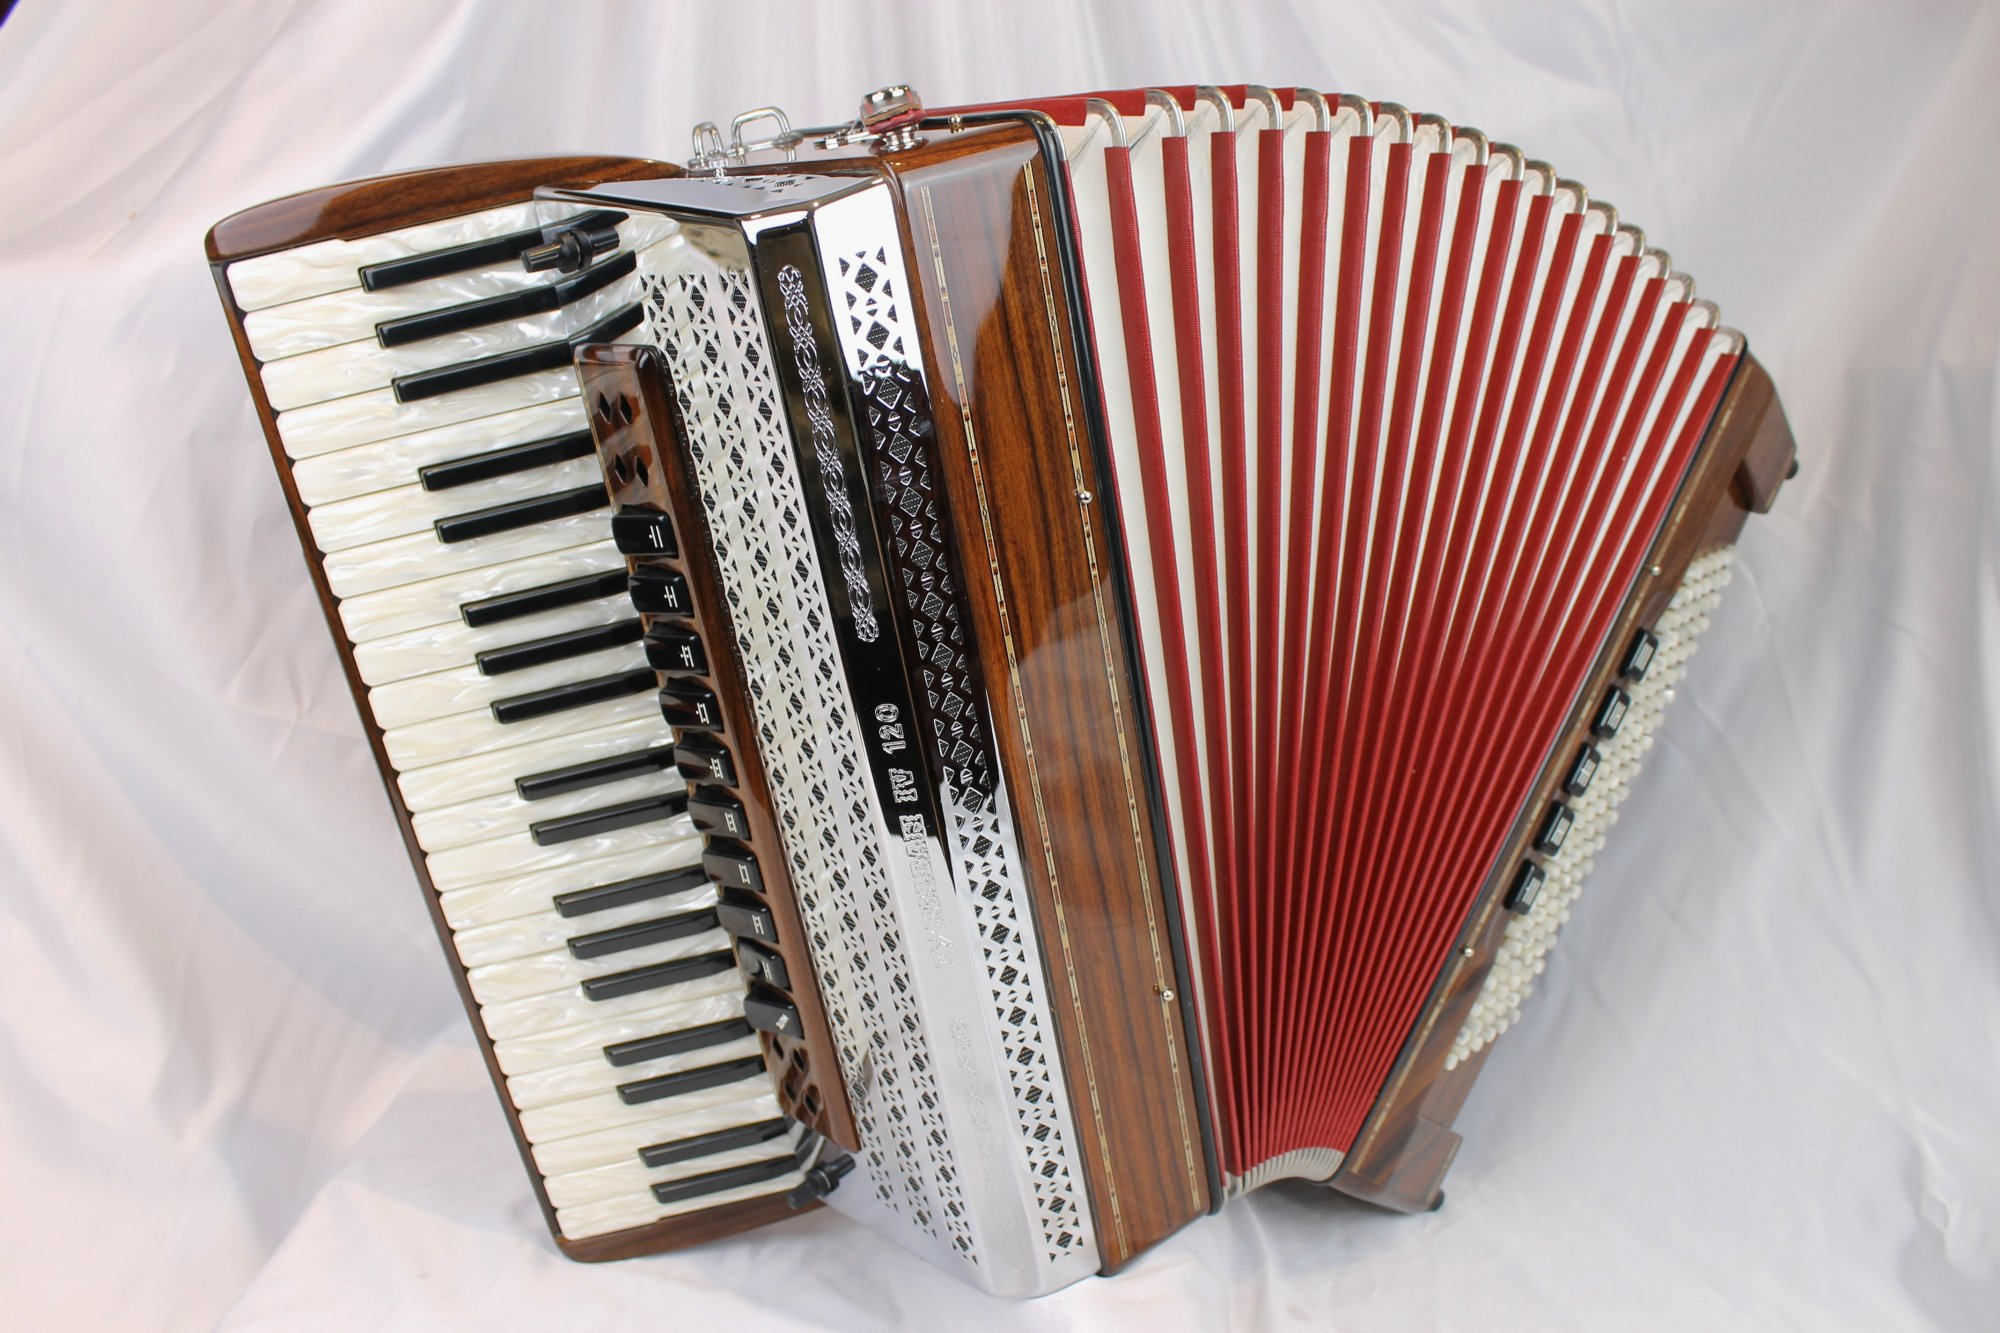 NEW Rosewood Beltuna Tyrolean IV  Piano Accordion LMMM 41 120